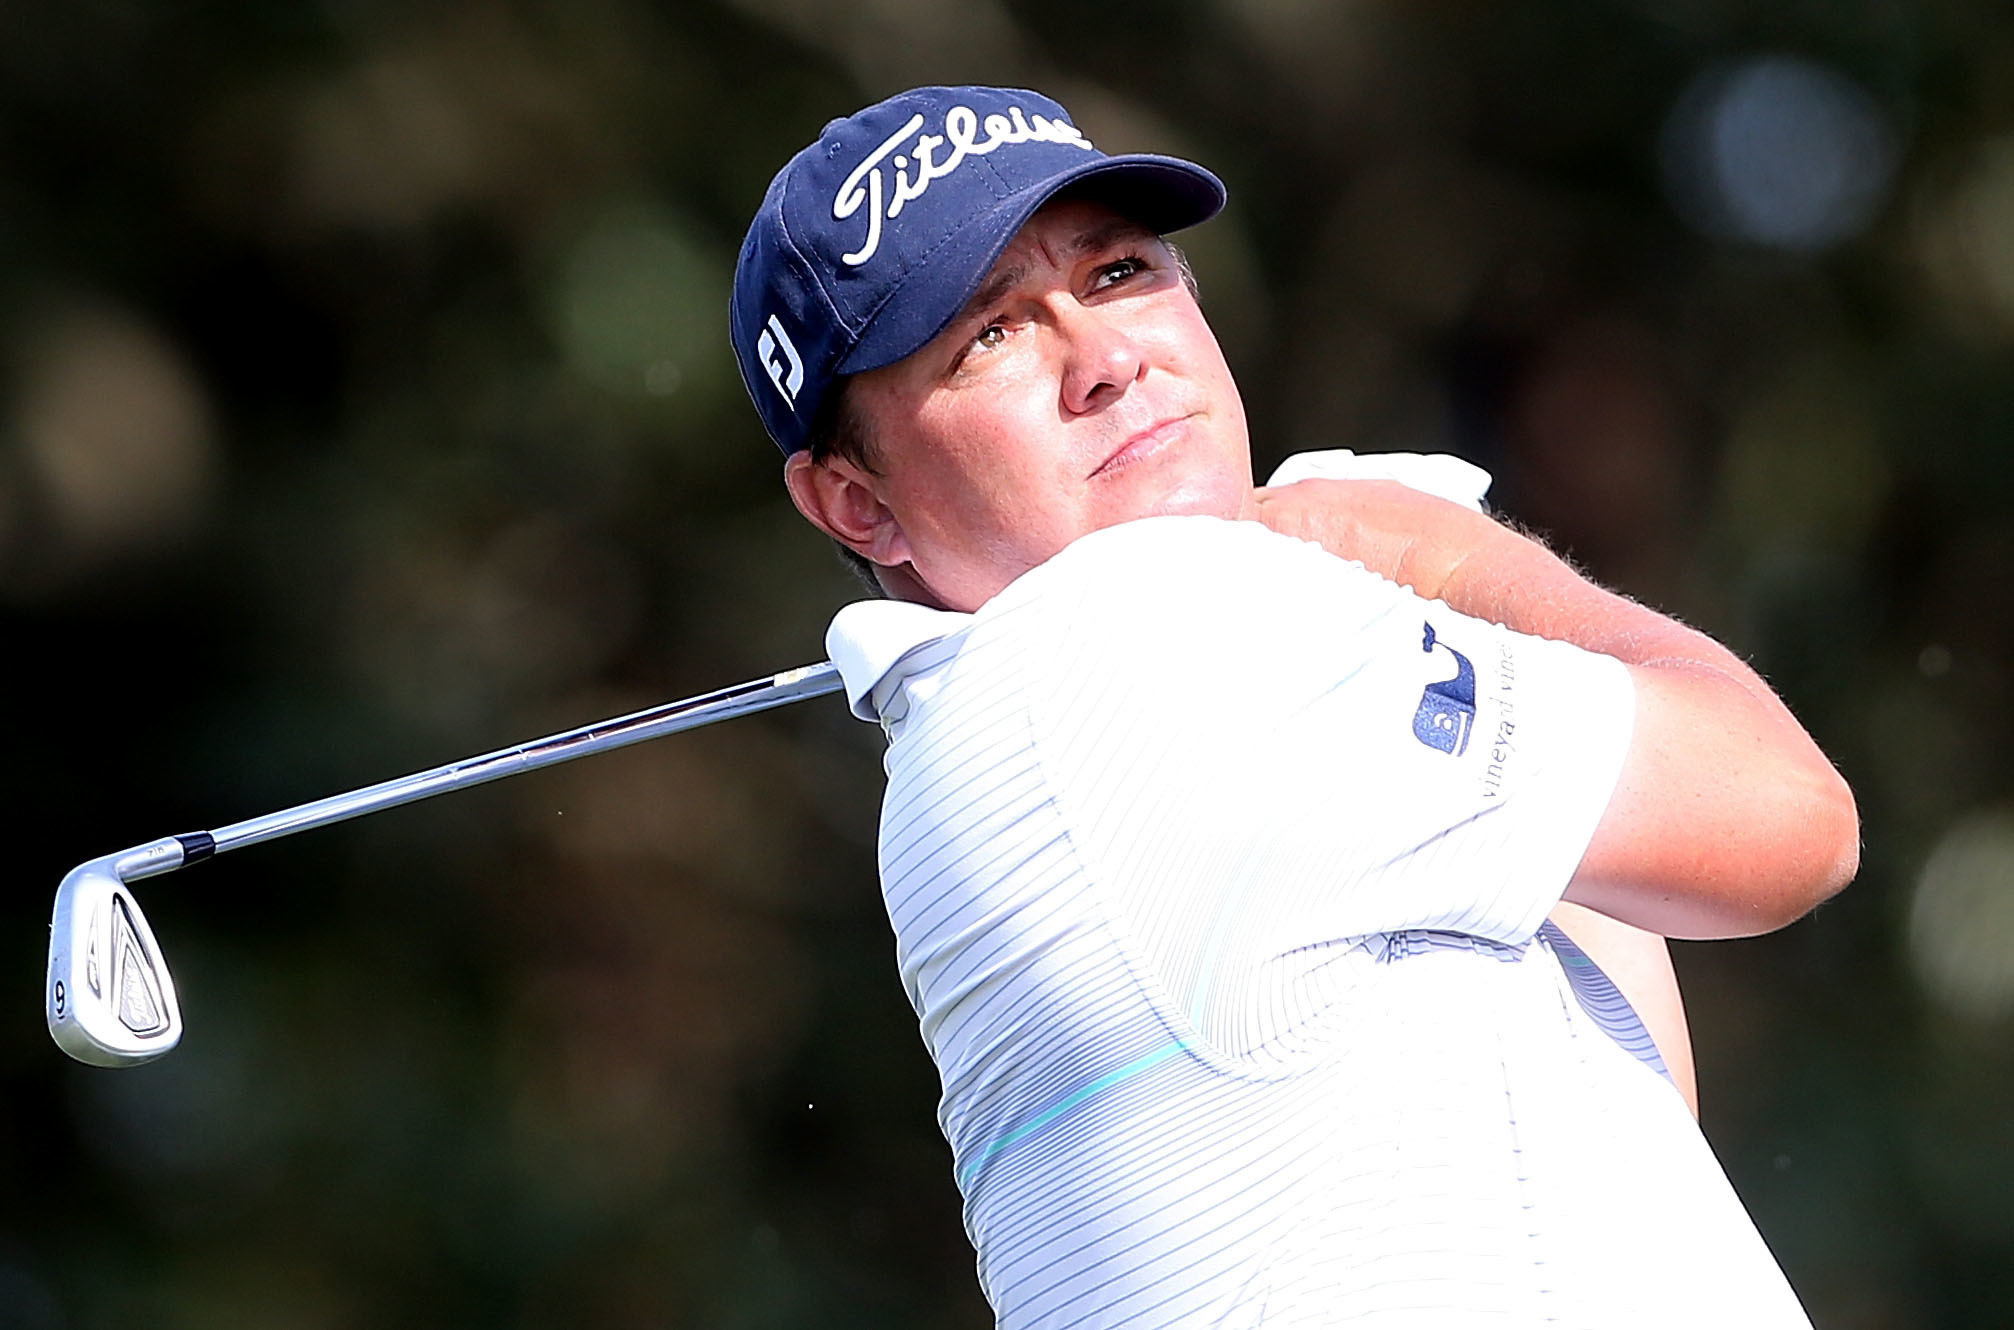 Dufner Eagles Twice To Lead Rbc Heritage Through 3 Rounds The